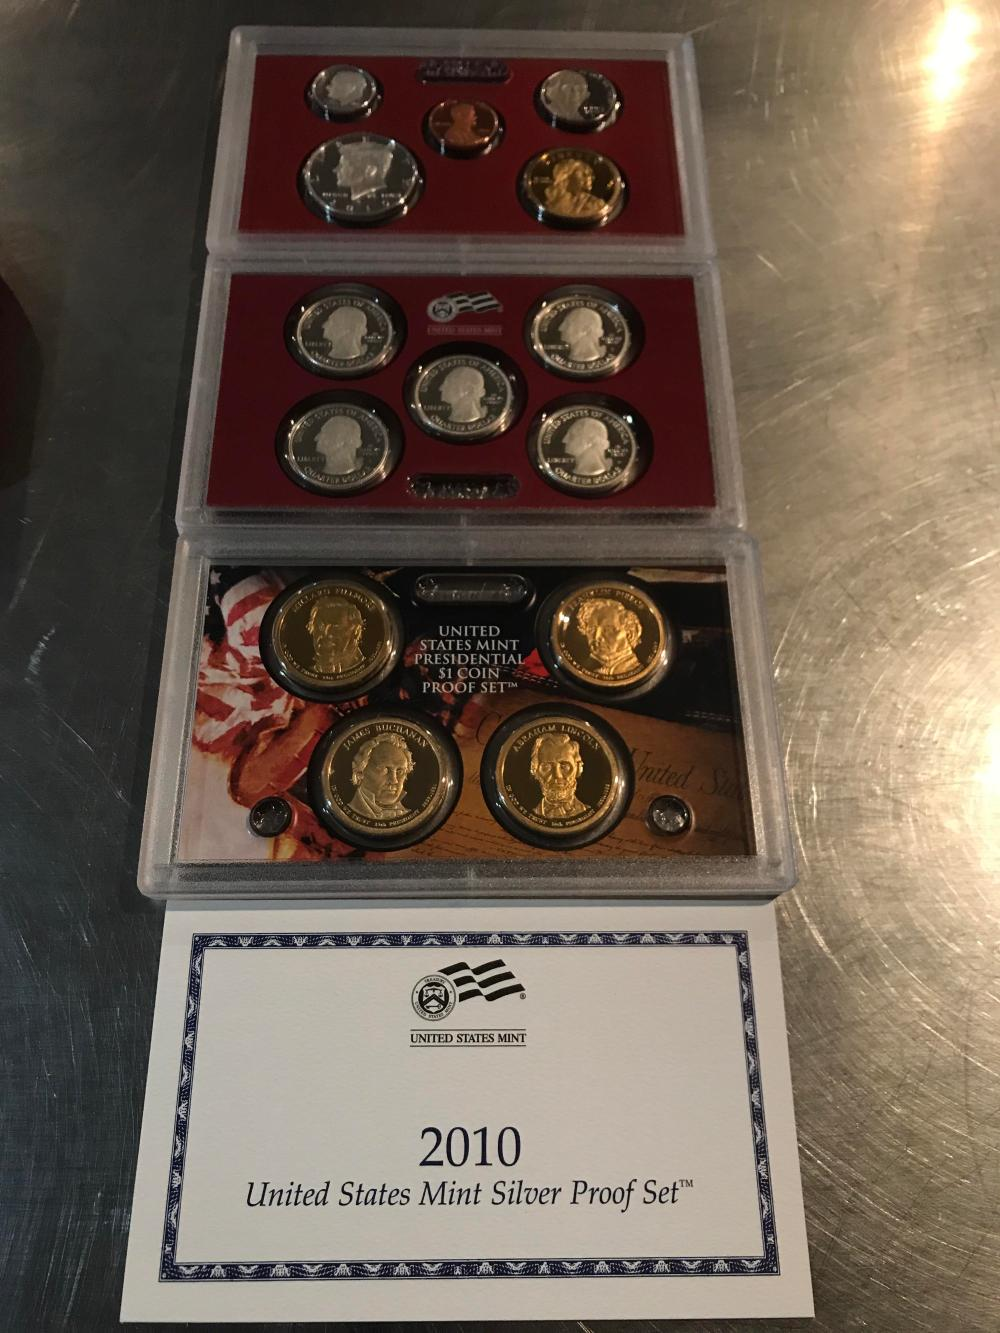 2010 United States meant Silver proof set